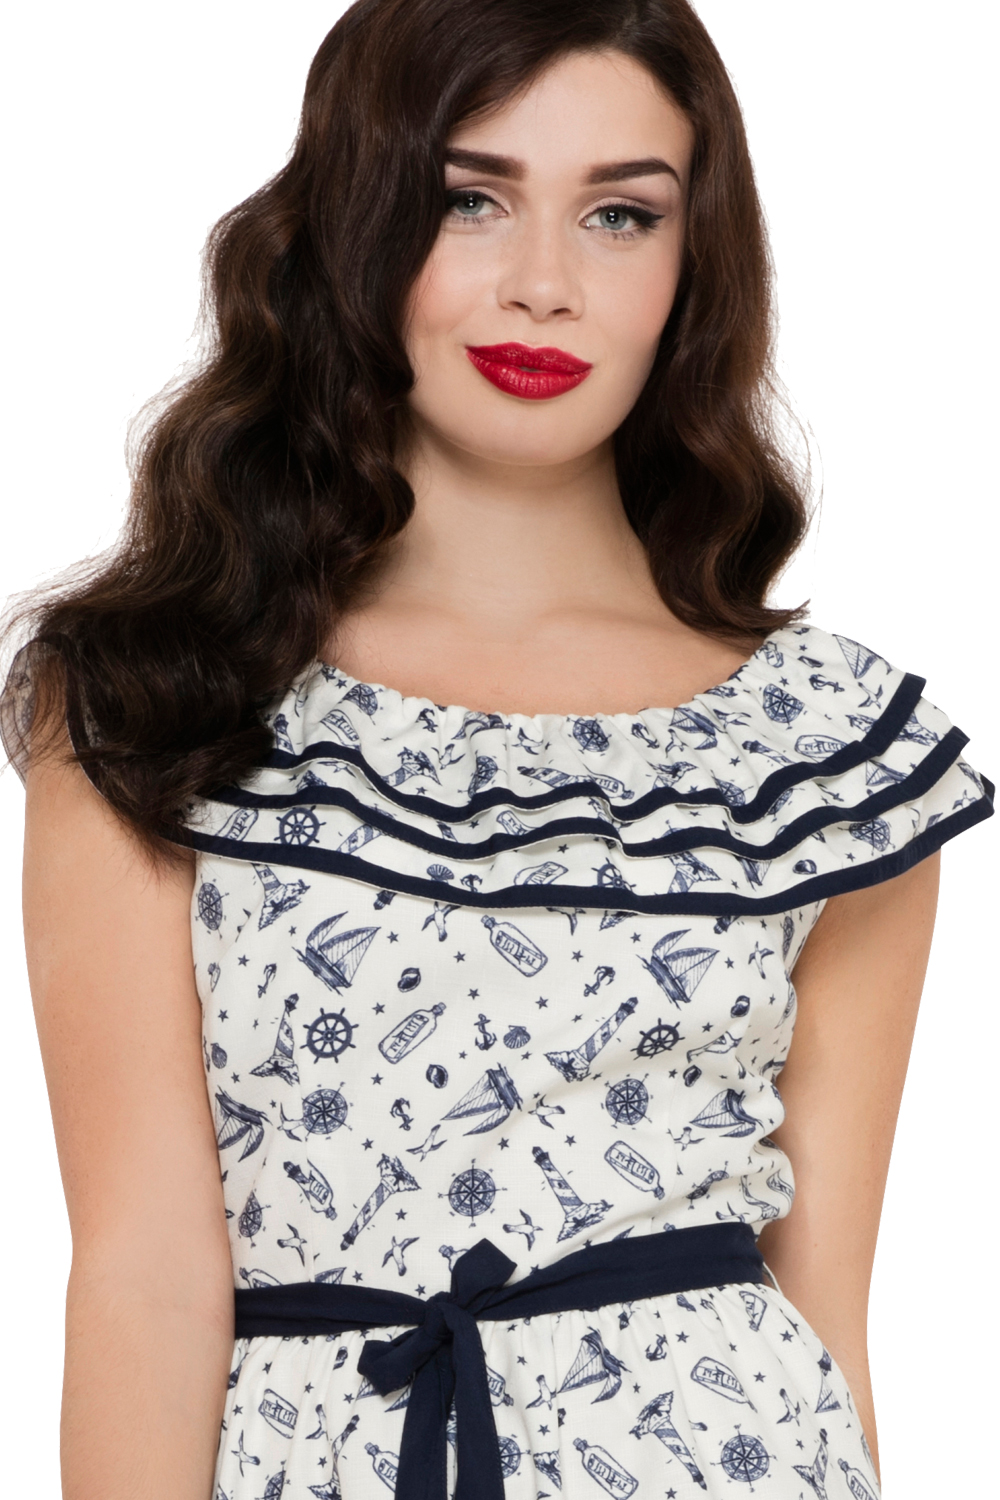 Voodoo Vixen Sailor Frilly St Tropez Dress